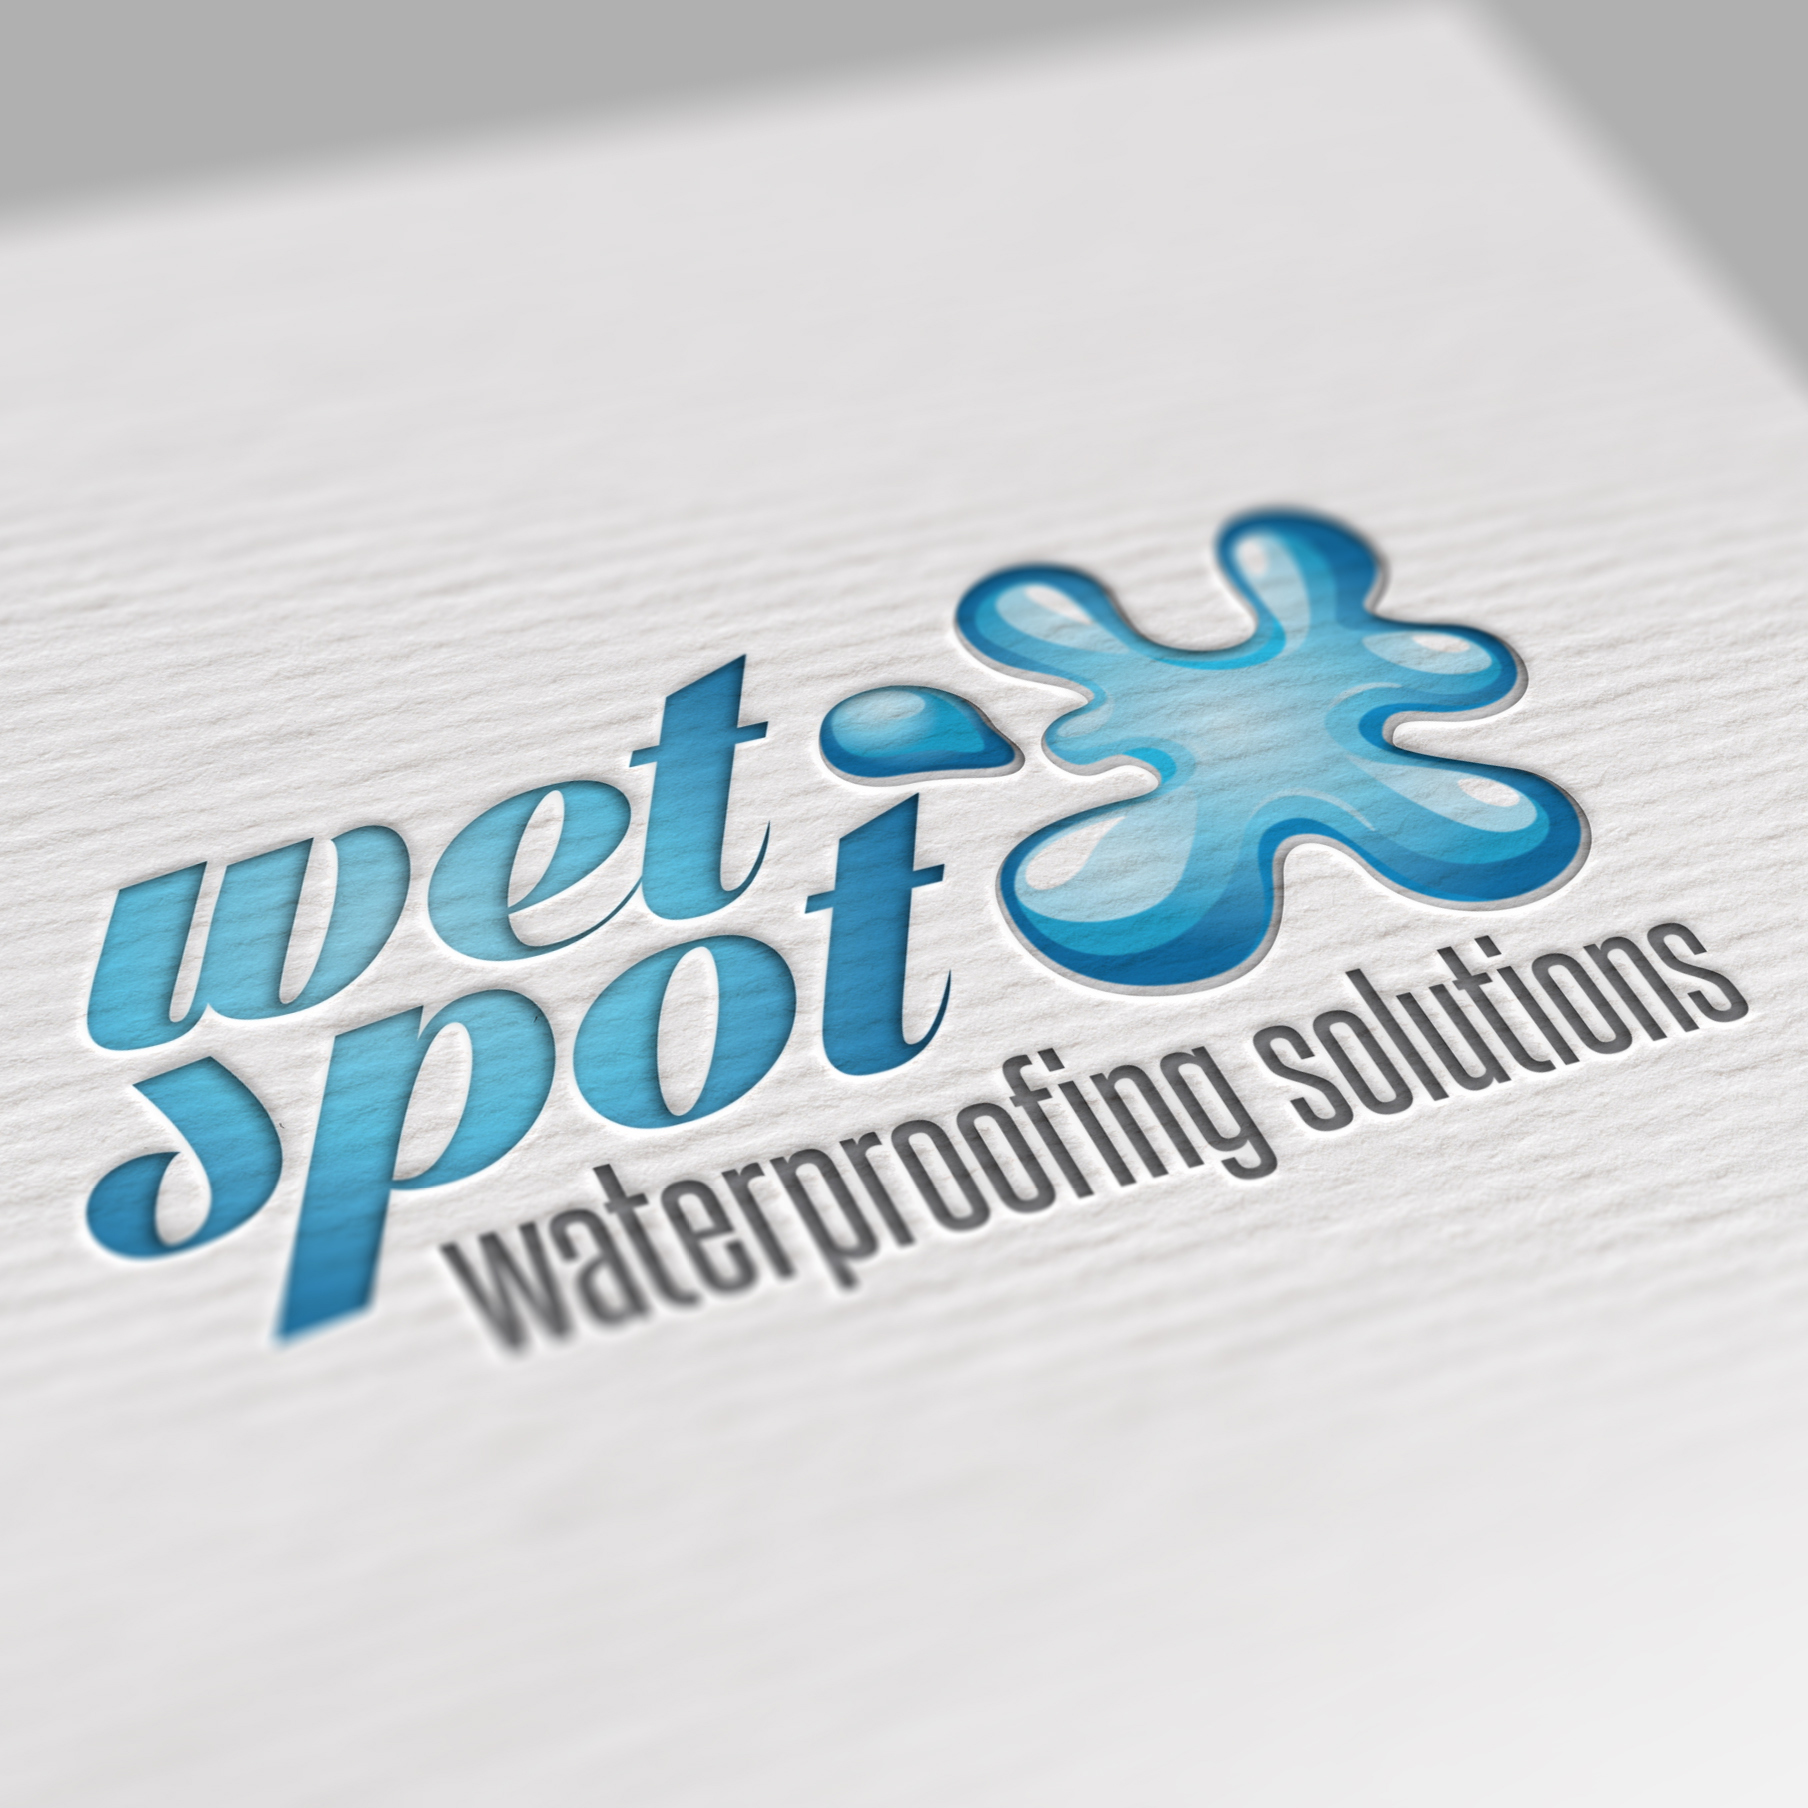 Wet Spot Waterproofing